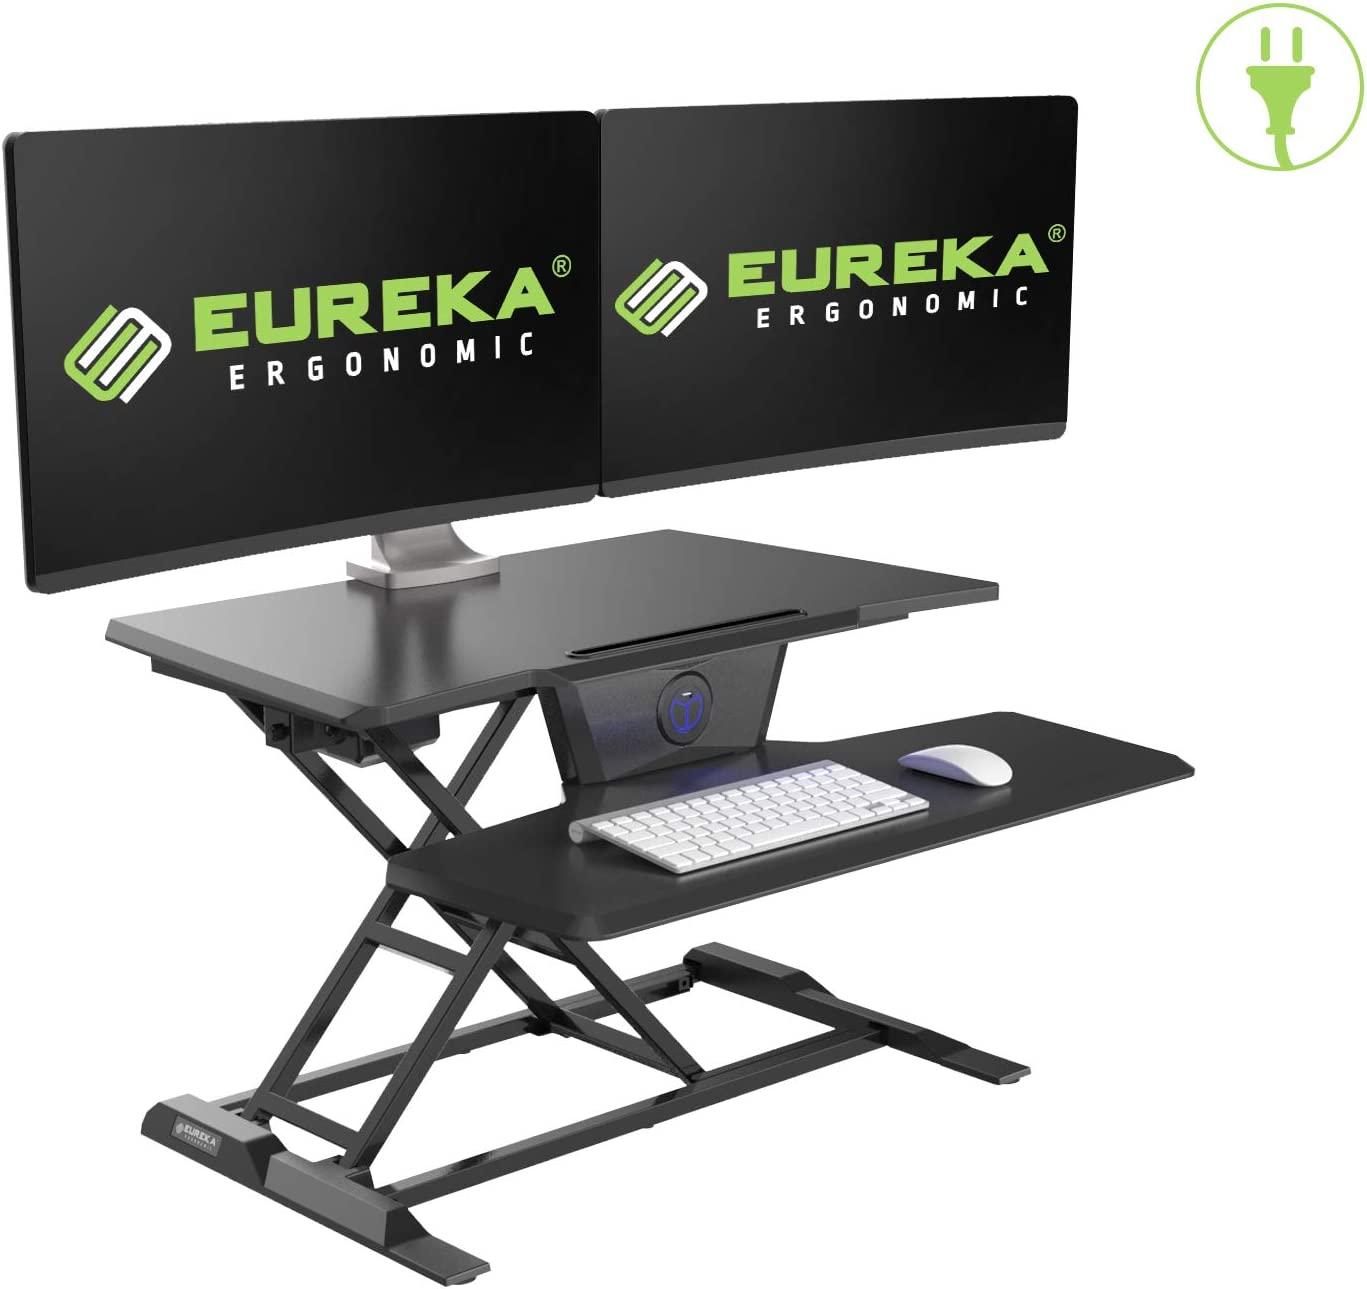 EUREKA ERGONOMIC Electric Standing Desk Converter, 31 W Sit to Stand Desk Riser, Tabletop Computer Workstation to Support Dual Monitors, Smooth Silent Height Adjustment, Black